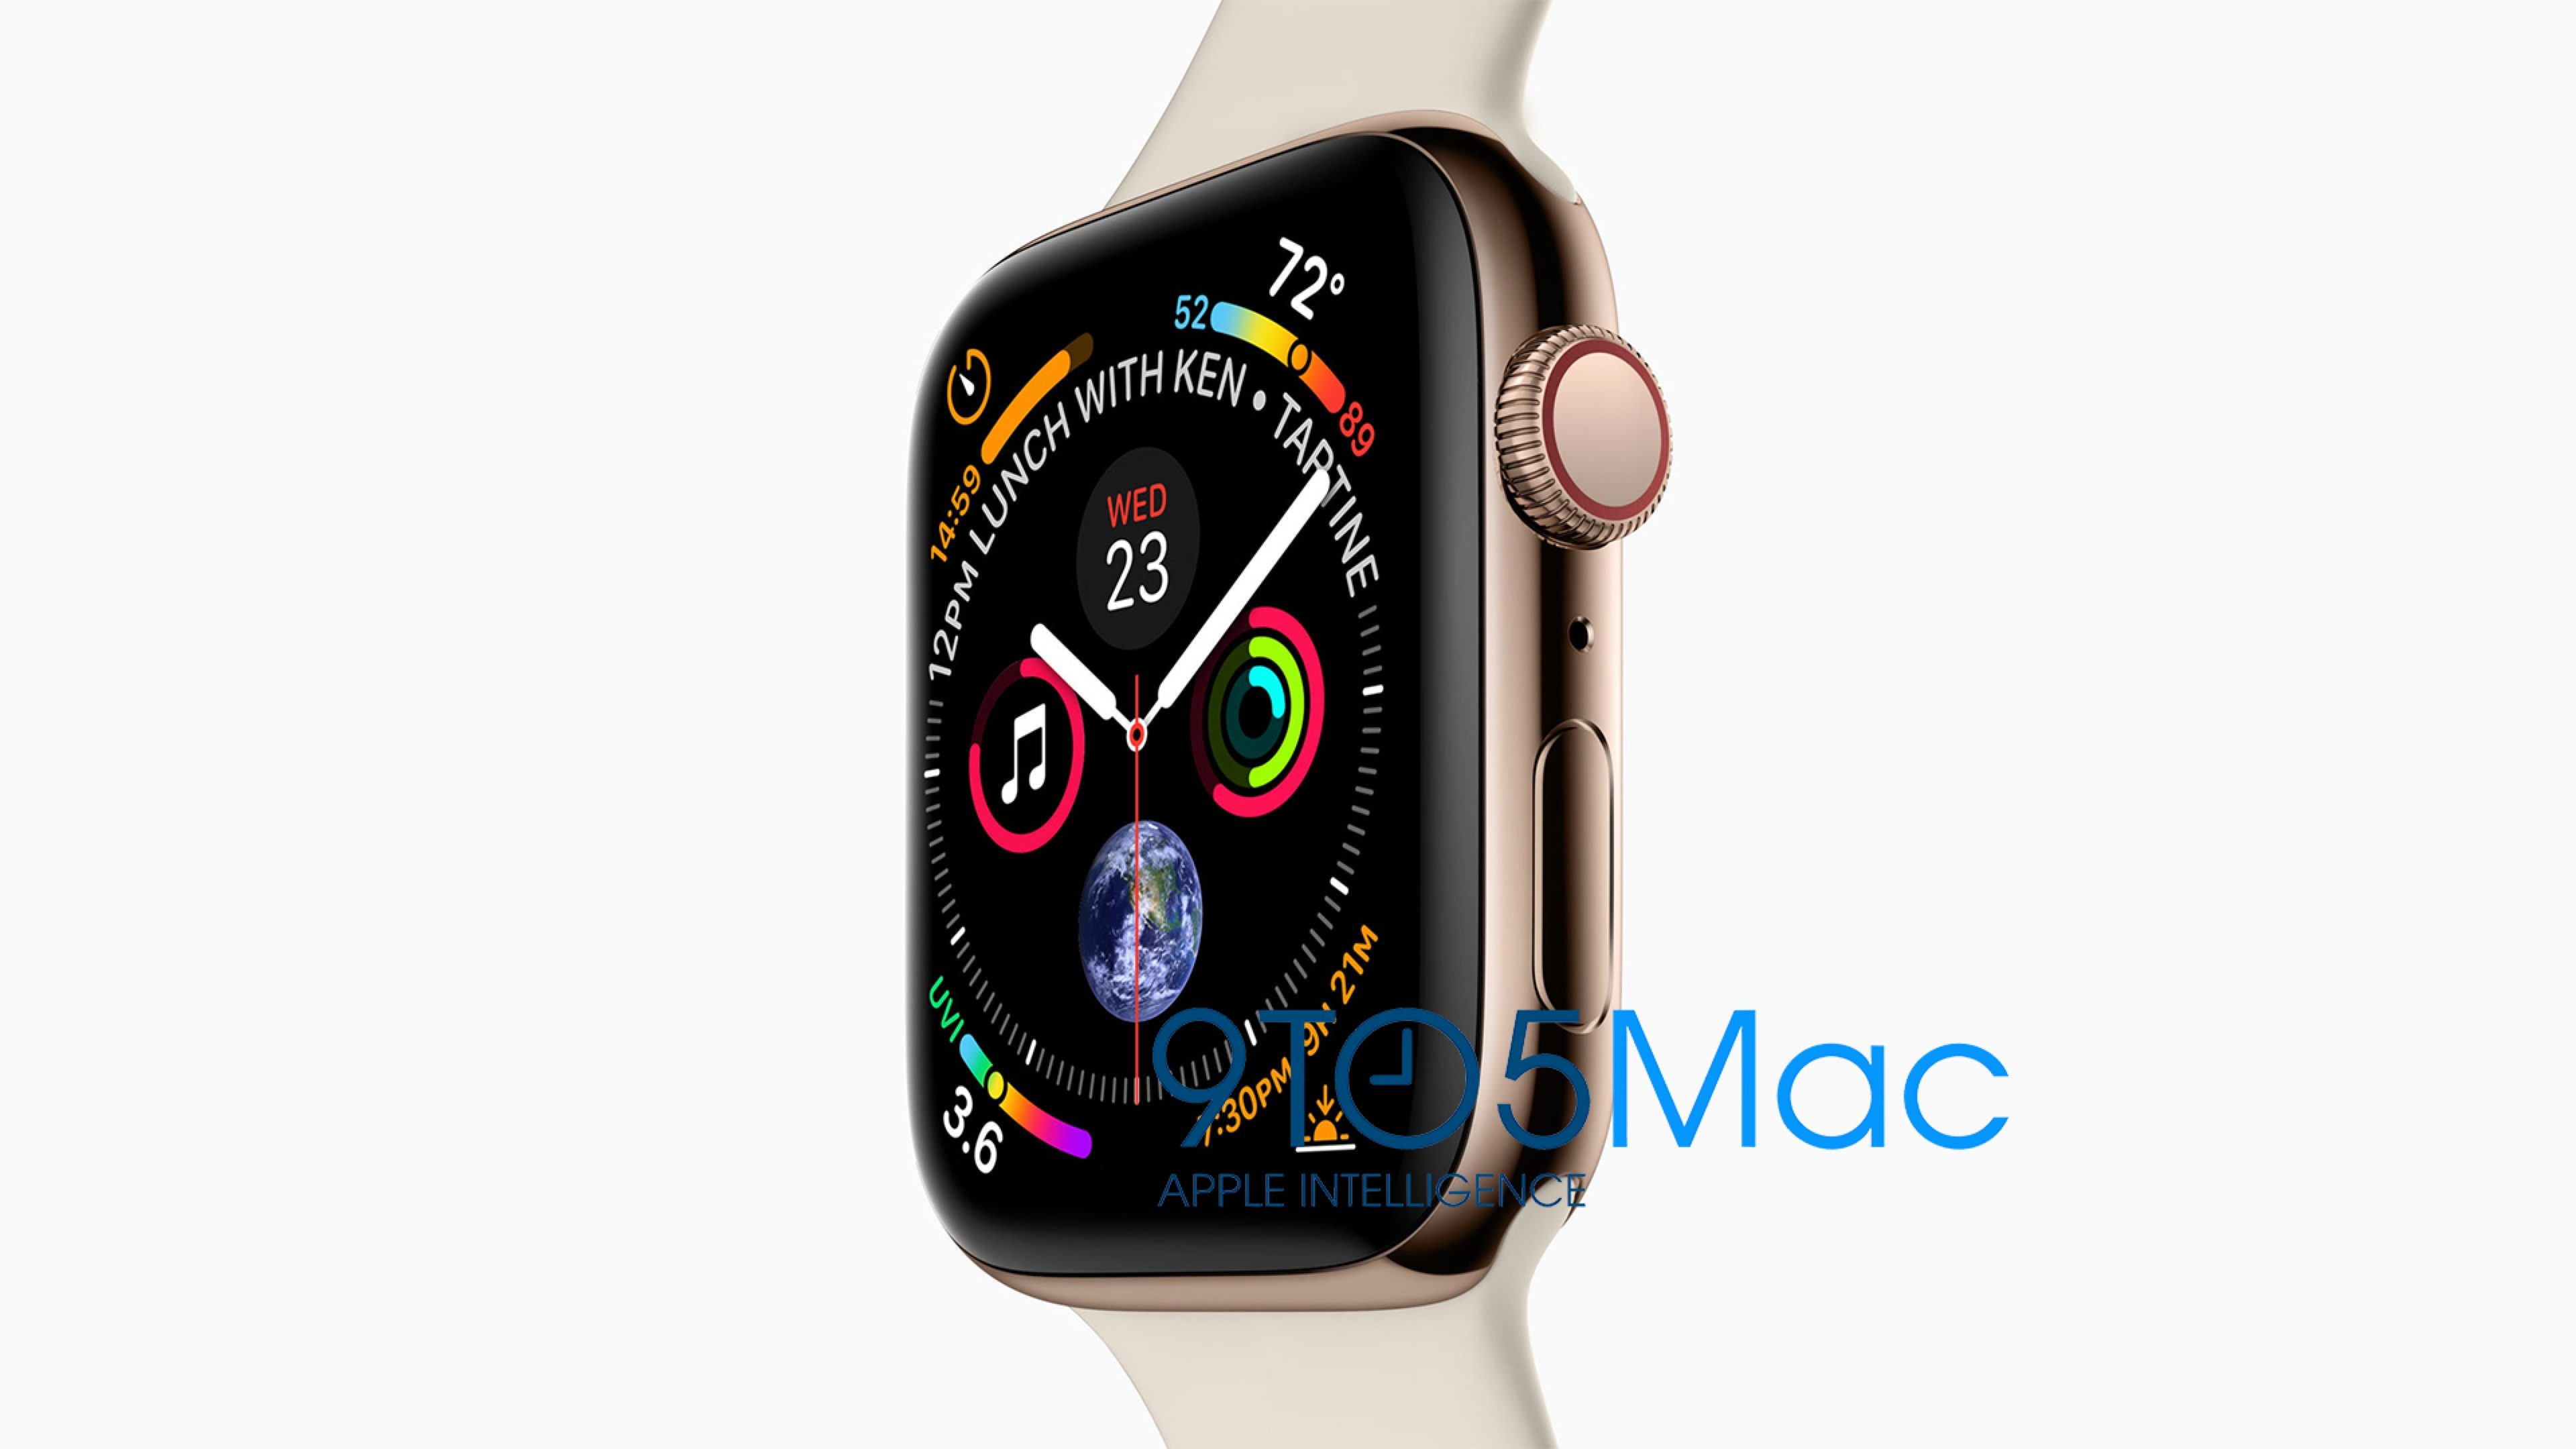 Image of the Apple Watch Series 4